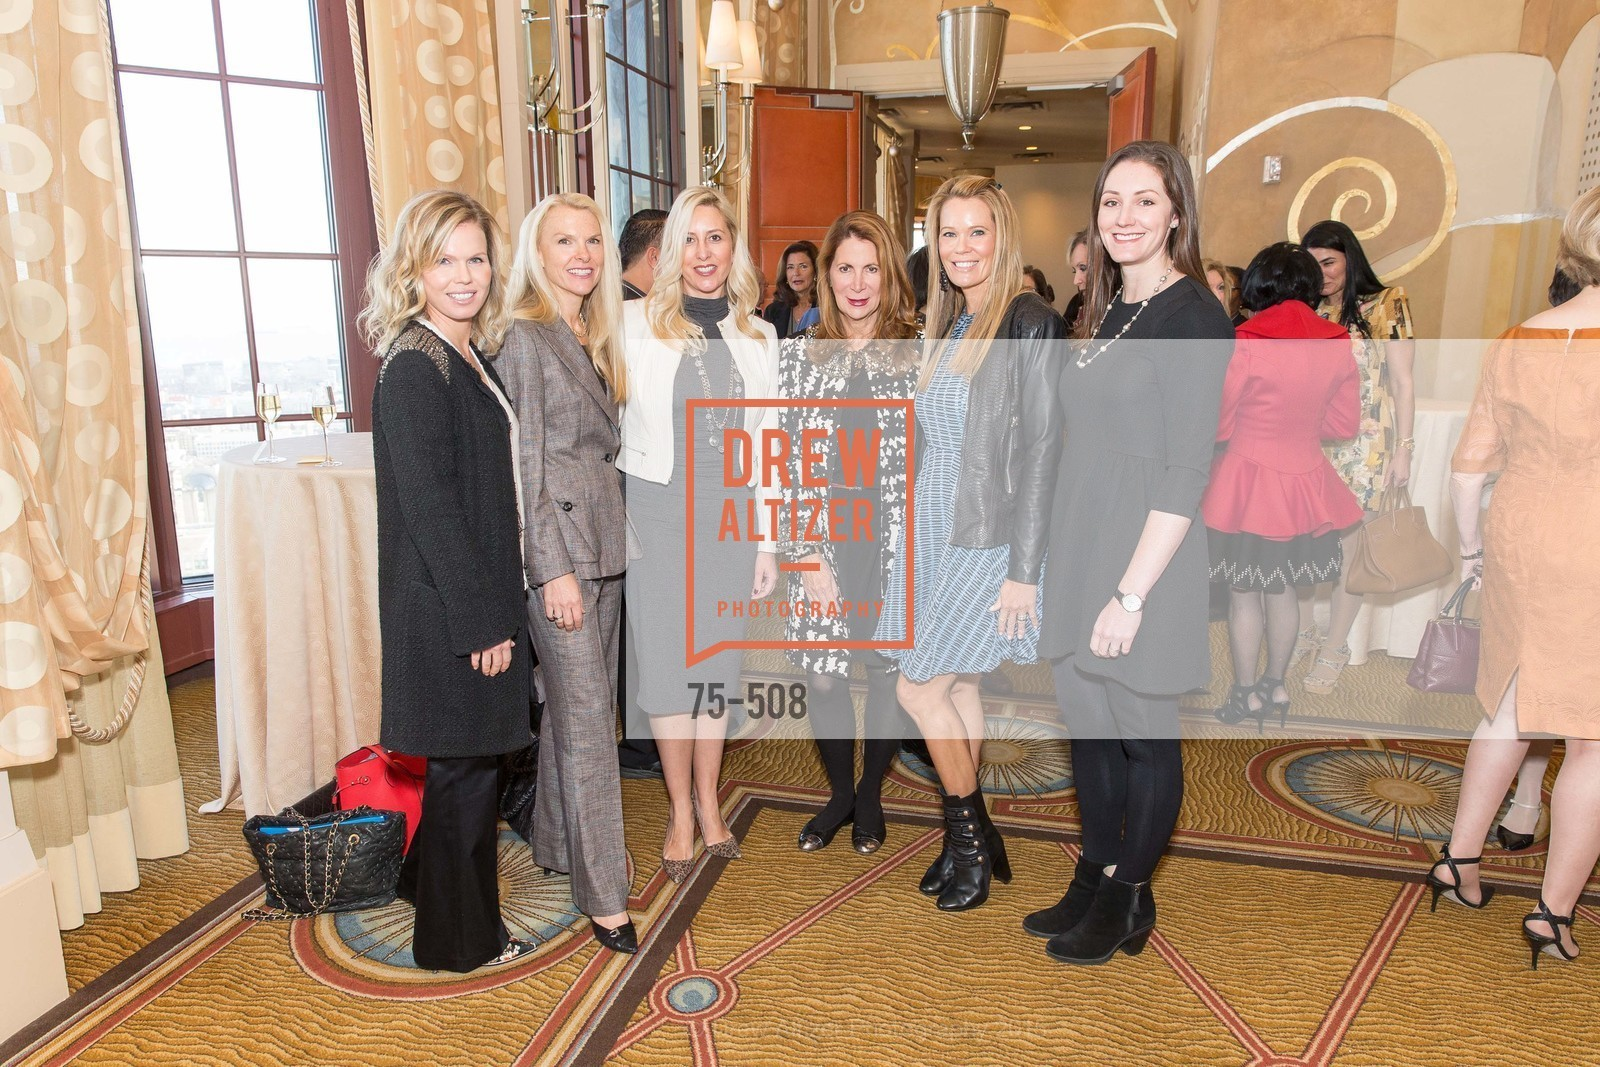 Claire Fluhr, Linle Froebe, Ginny Ziegler, Patricia Ferrin Loucks, Stephanie Tuttle, Annie Schieding, San Francisco Opera Guild Annual Meeting & Luncheon, The Westin St. Francis Union Square. 335 Powell St, November 10th, 2015,Drew Altizer, Drew Altizer Photography, full-service agency, private events, San Francisco photographer, photographer california